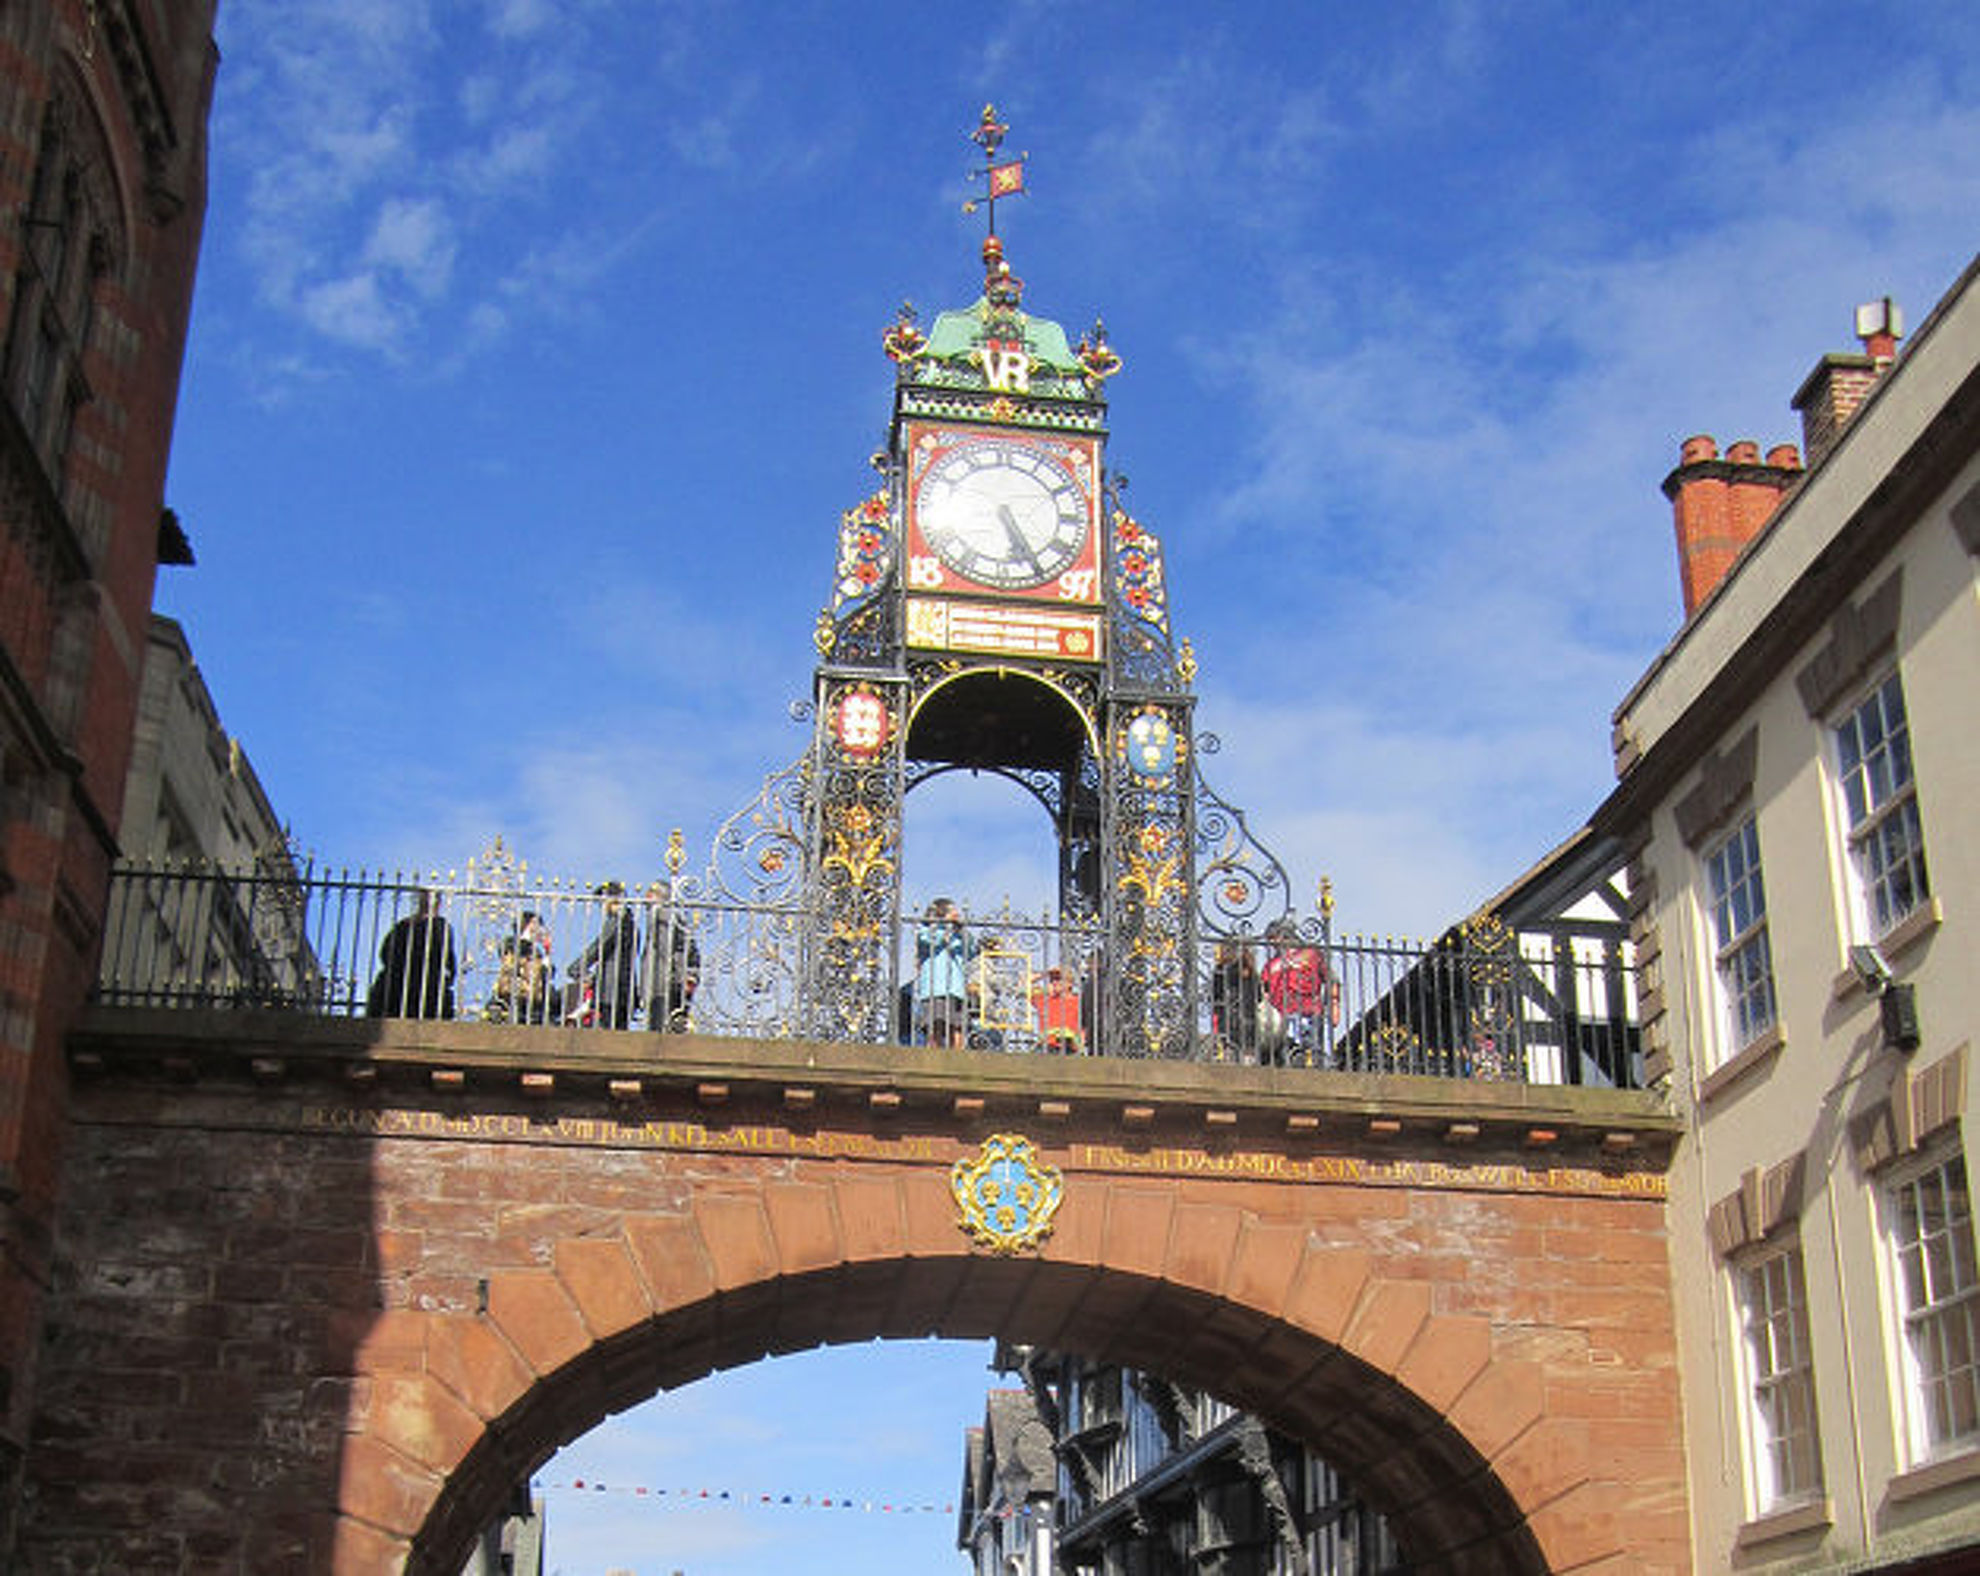 Explore Eastgate Clock